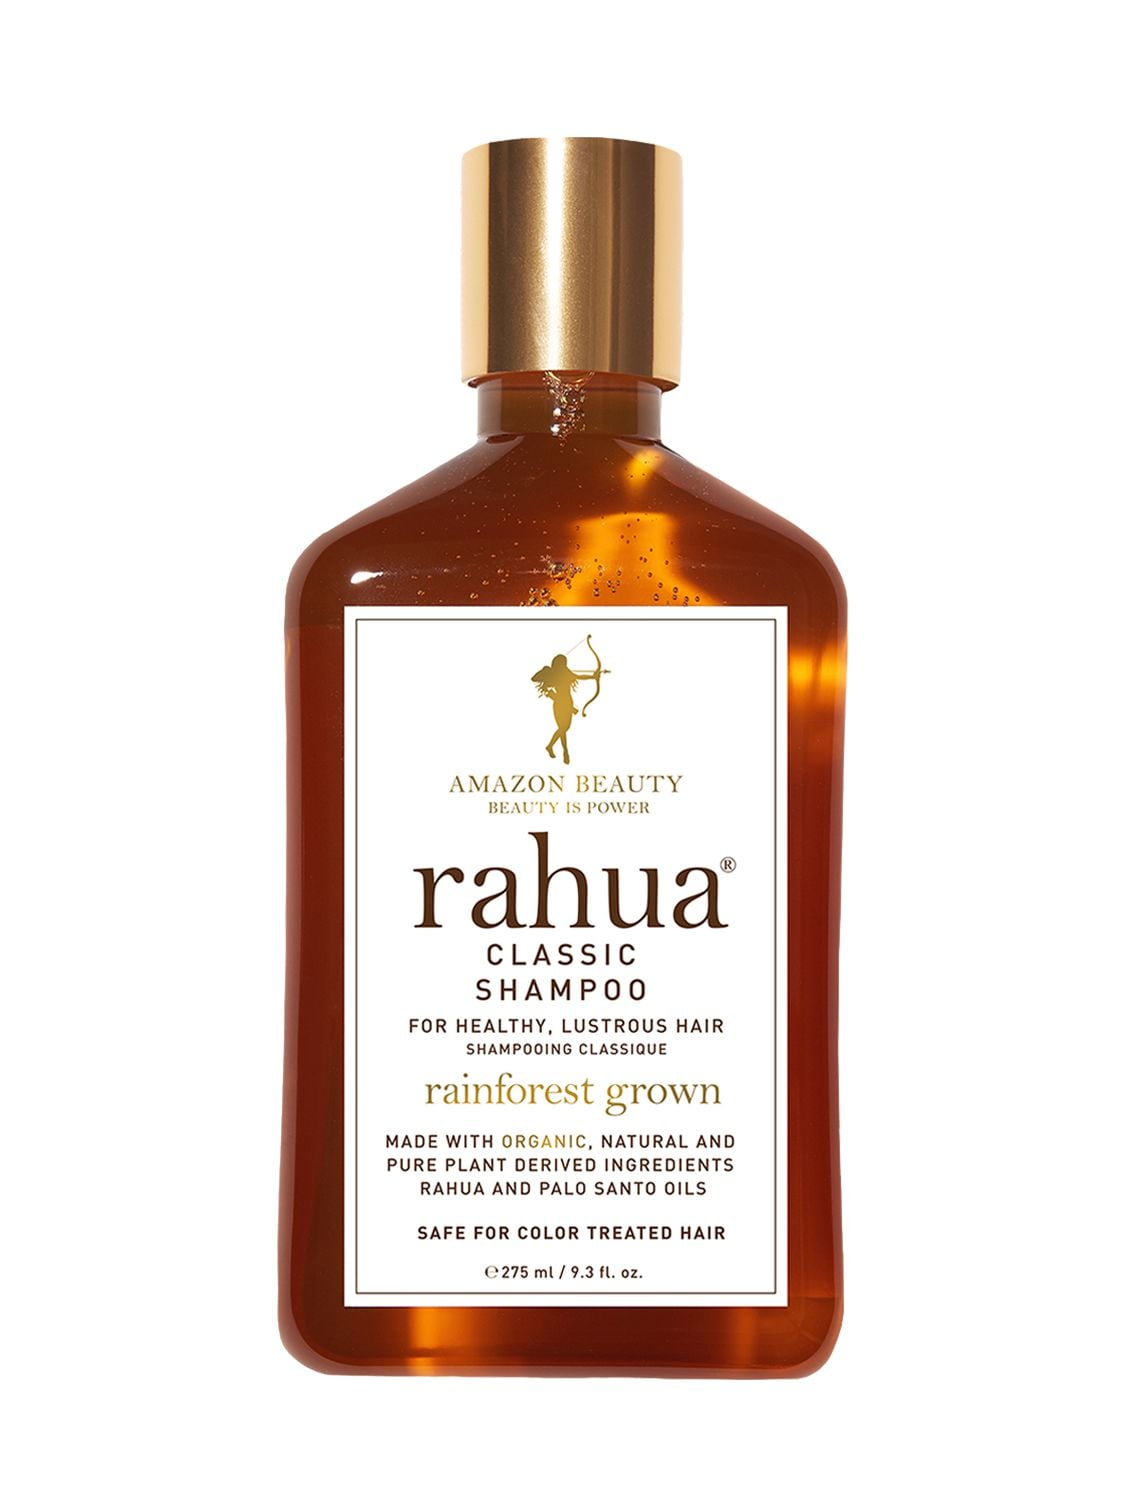 275ml. Leaves hair soft, silky, and luminous. Soothes scalp. HOW TO USE:,Apply on thoroughly wet hai